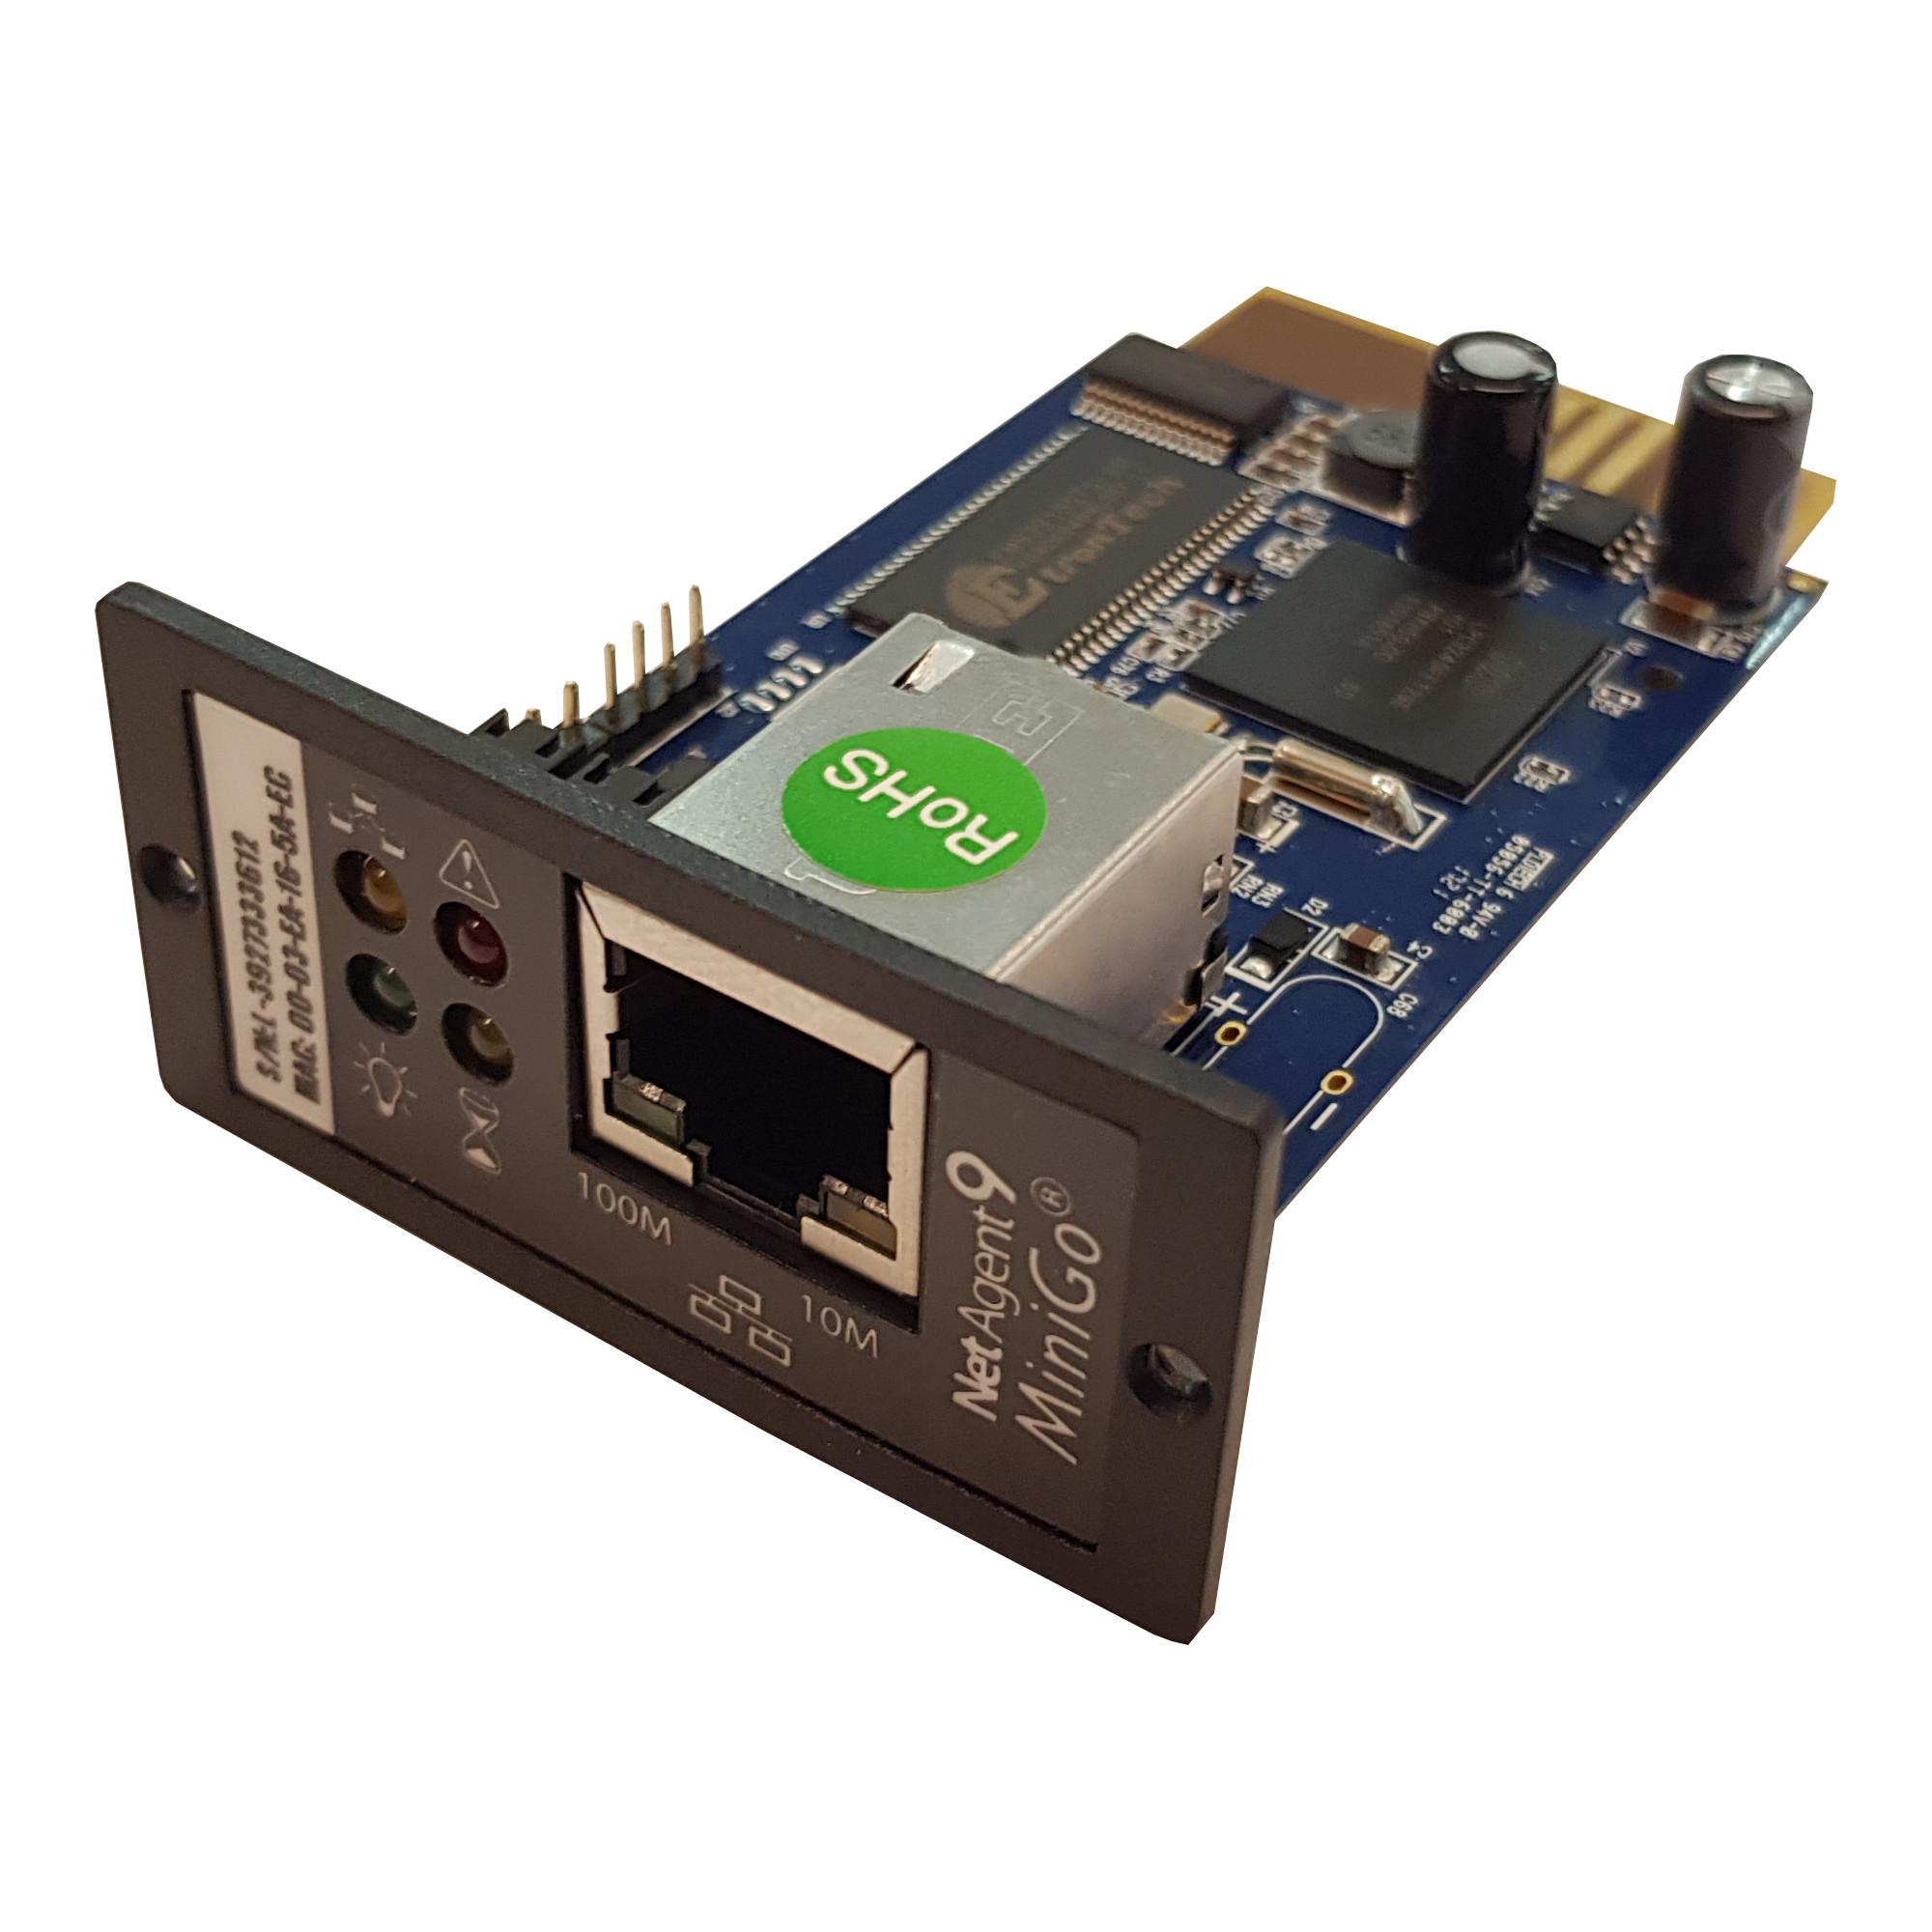 SNMP card DL801 for UDC/MP S RT 2, 1-3KVA | LARICE | SNMP card DL801